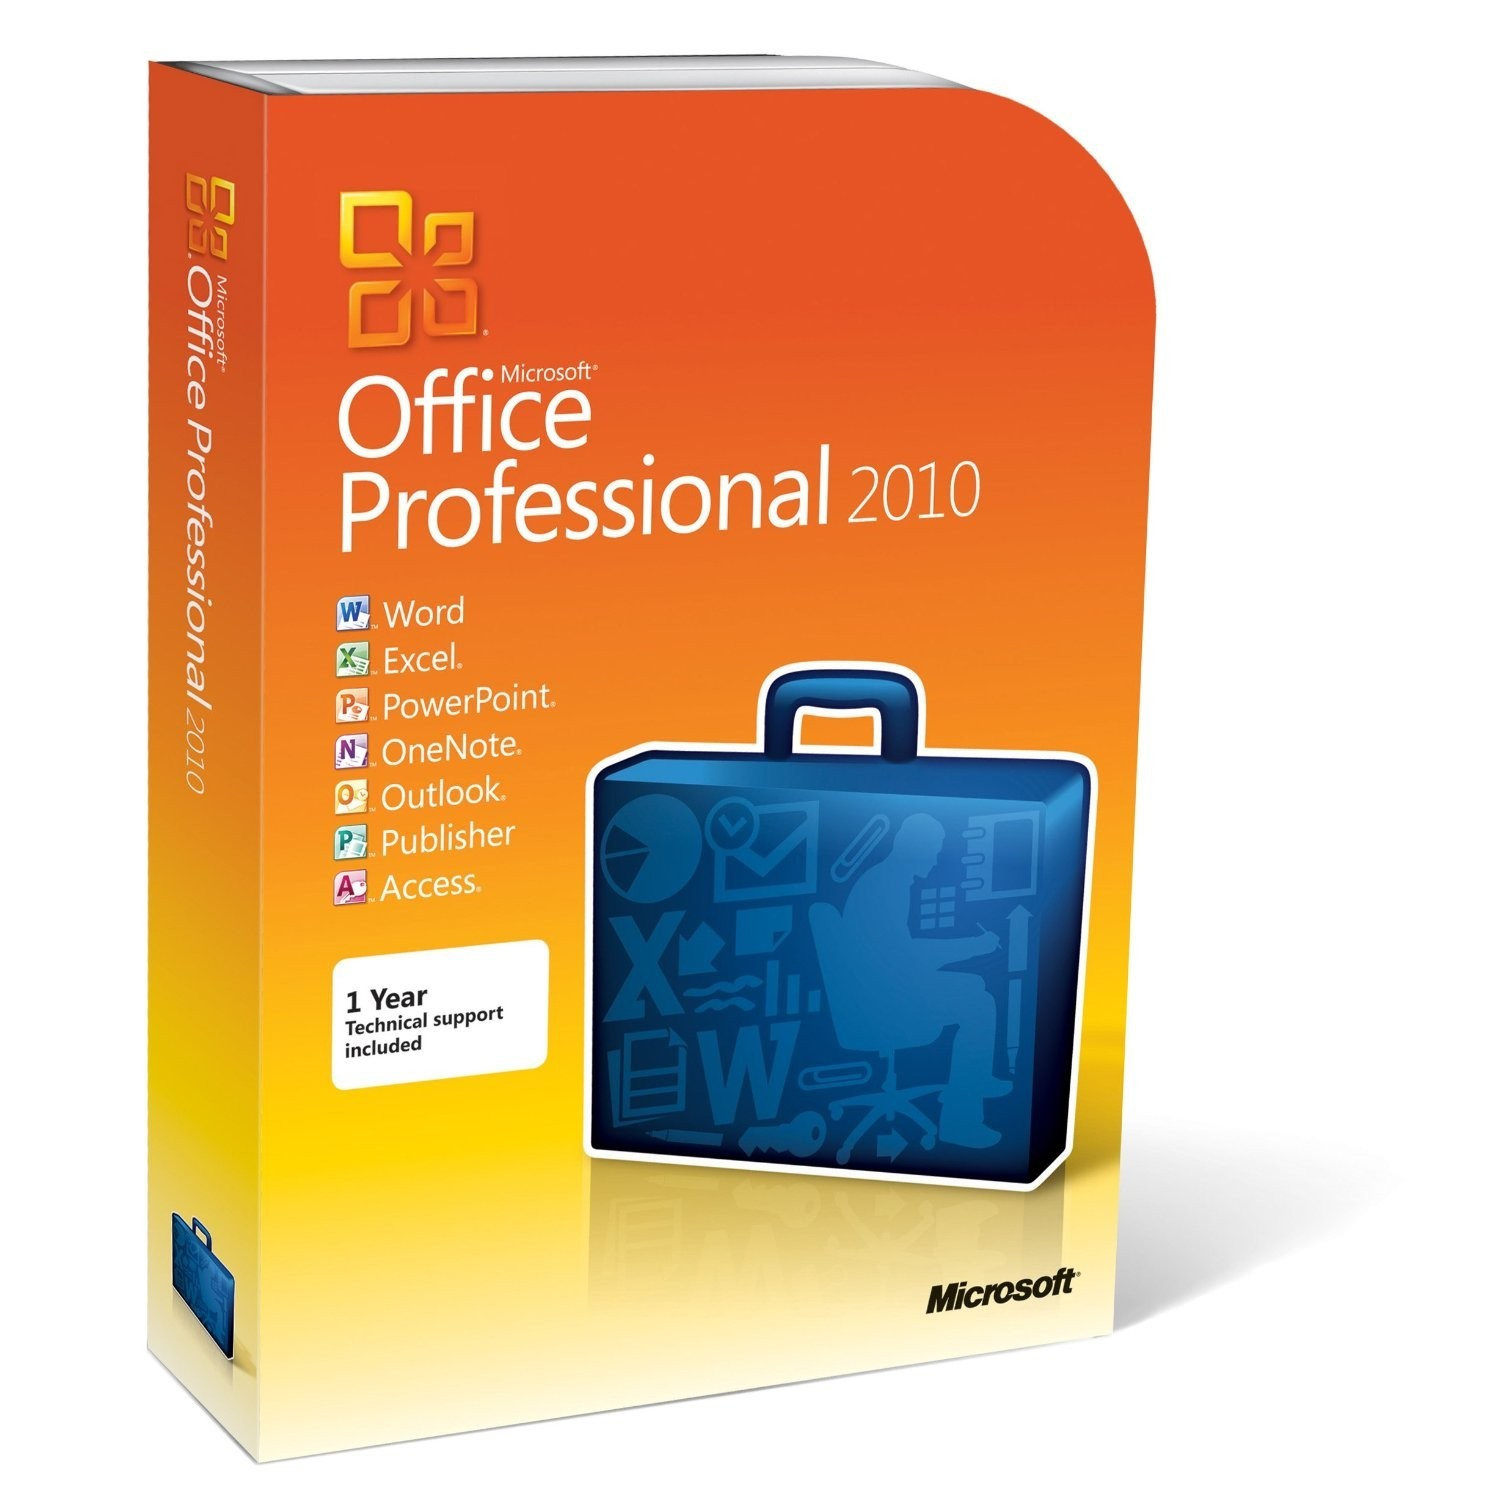 Can anyone tell me if office enterprise 32-bit can be set up on a windows 7 64-bit system?